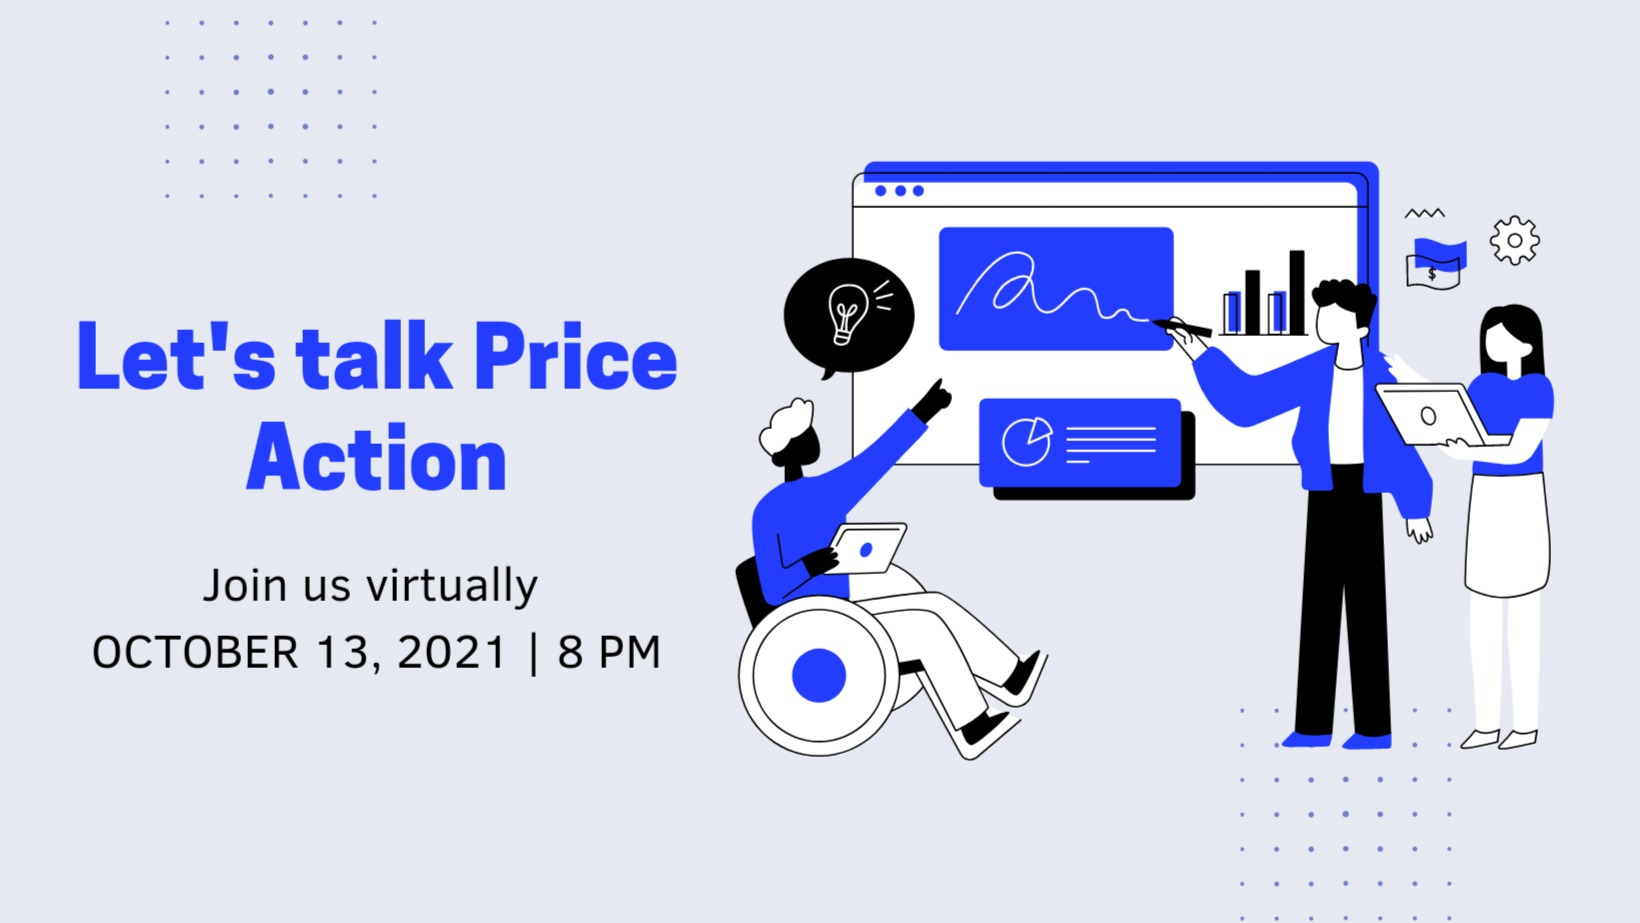 Let's talk Price Action